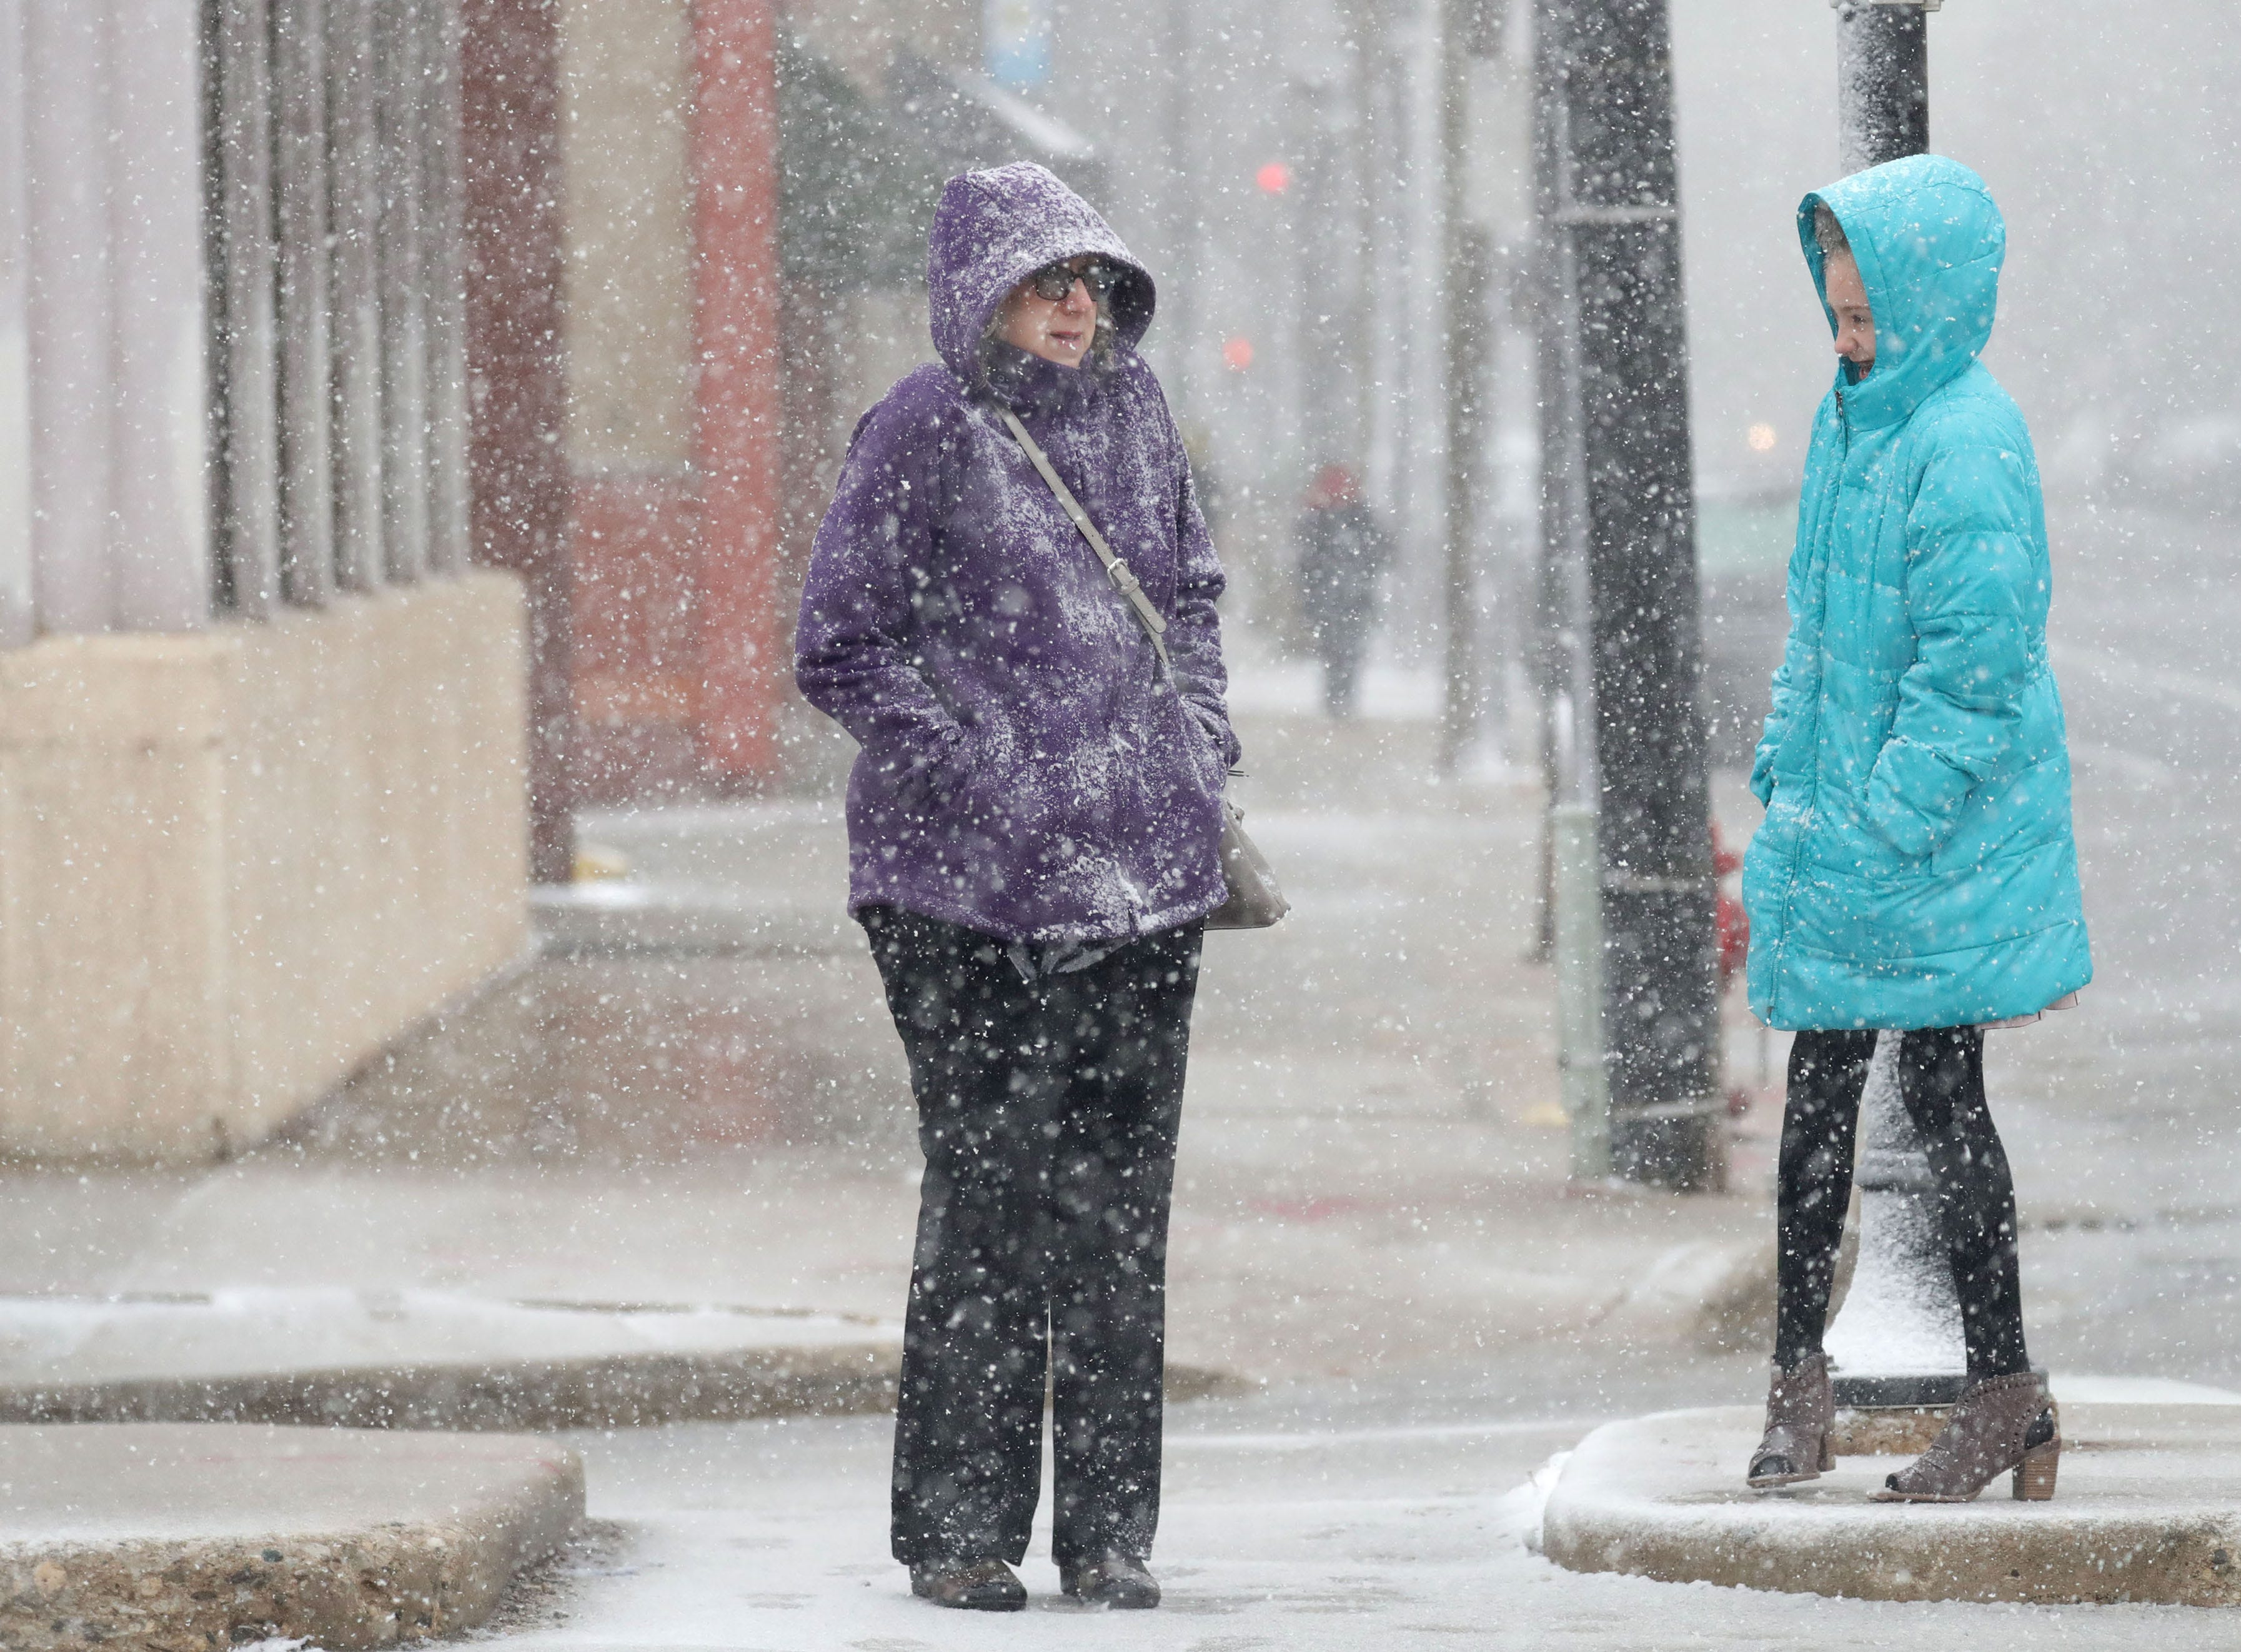 Pedestrians stand in the snow waiting for a light to change on East Kilbourn Avenue and North Plankinton Avenue.